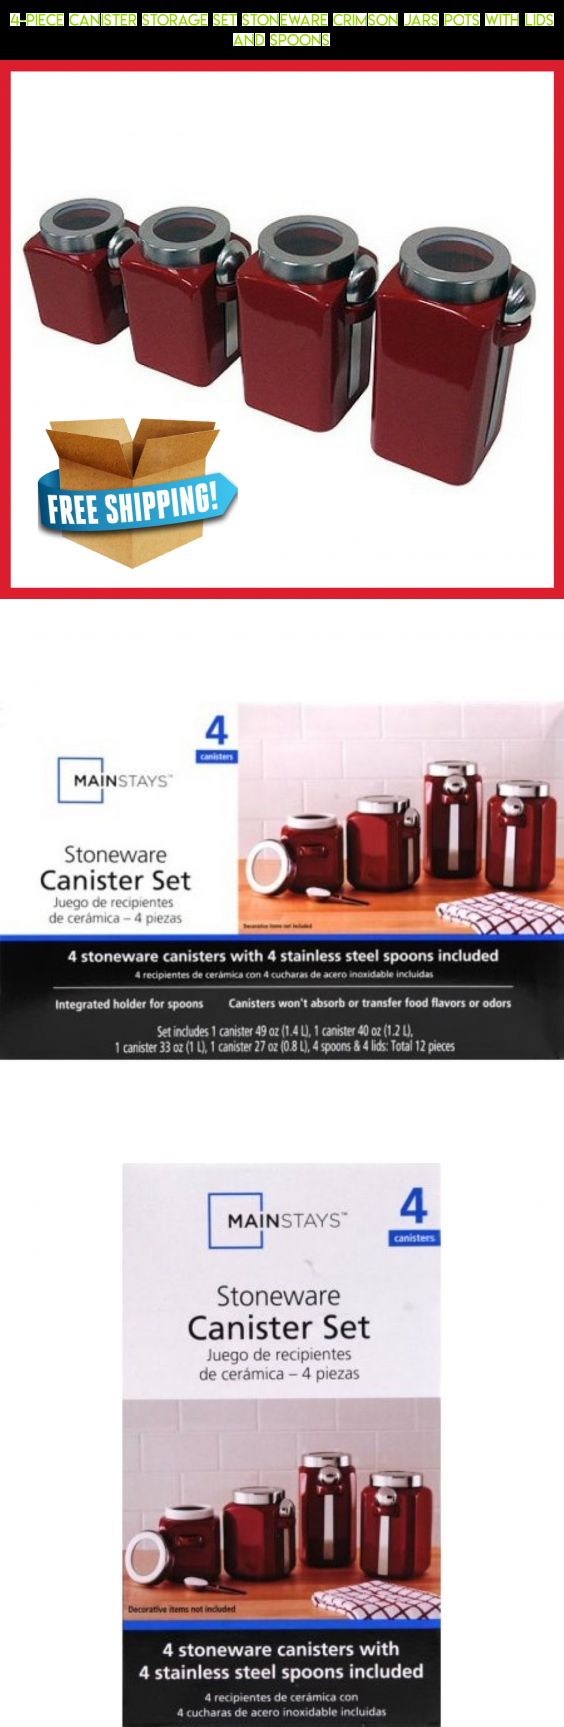 4-Piece Canister Storage Set Stoneware Crimson Jars Pots With Lids And Spoons #products #plans #lids #parts #with #camera #tech #racing #kit #storage #fpv #jars #technology #drone #gadgets #shopping